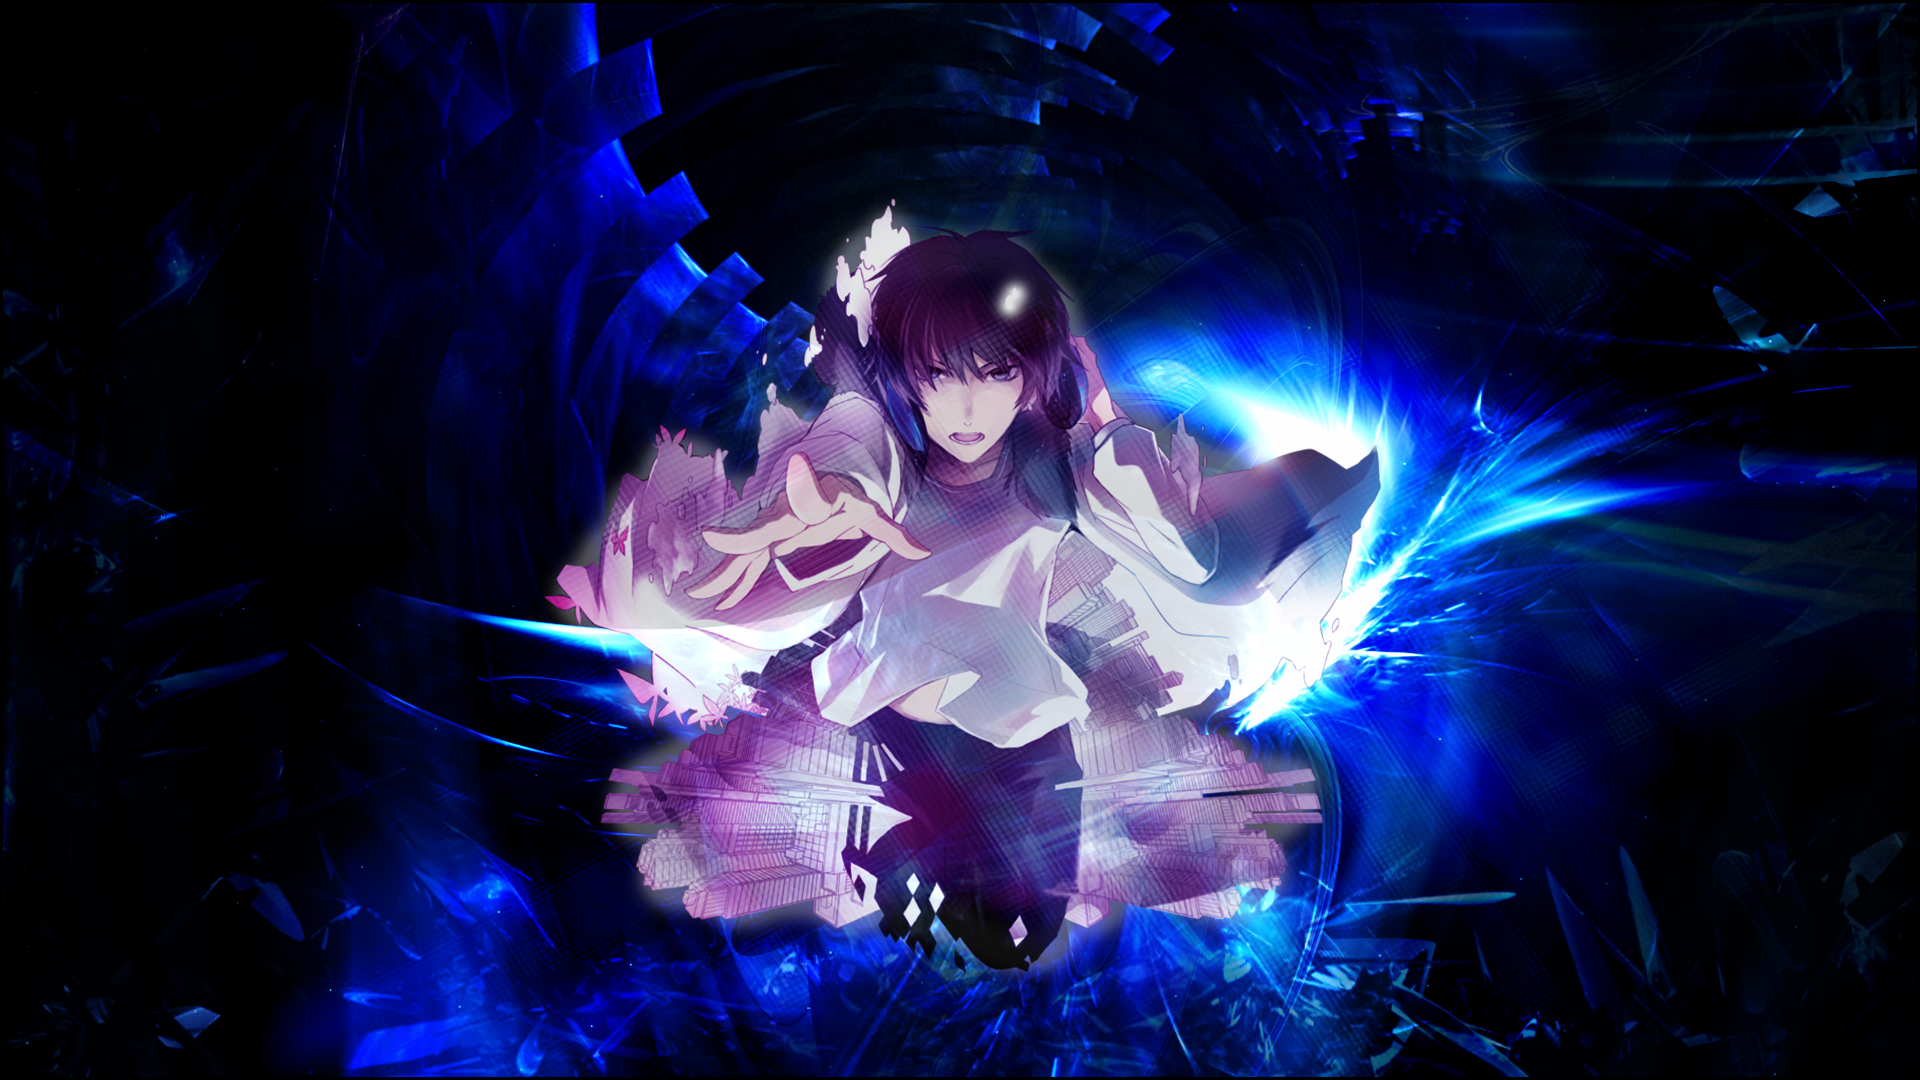 Abstract anime background by veloxity on deviantart - Abstract anime girl ...